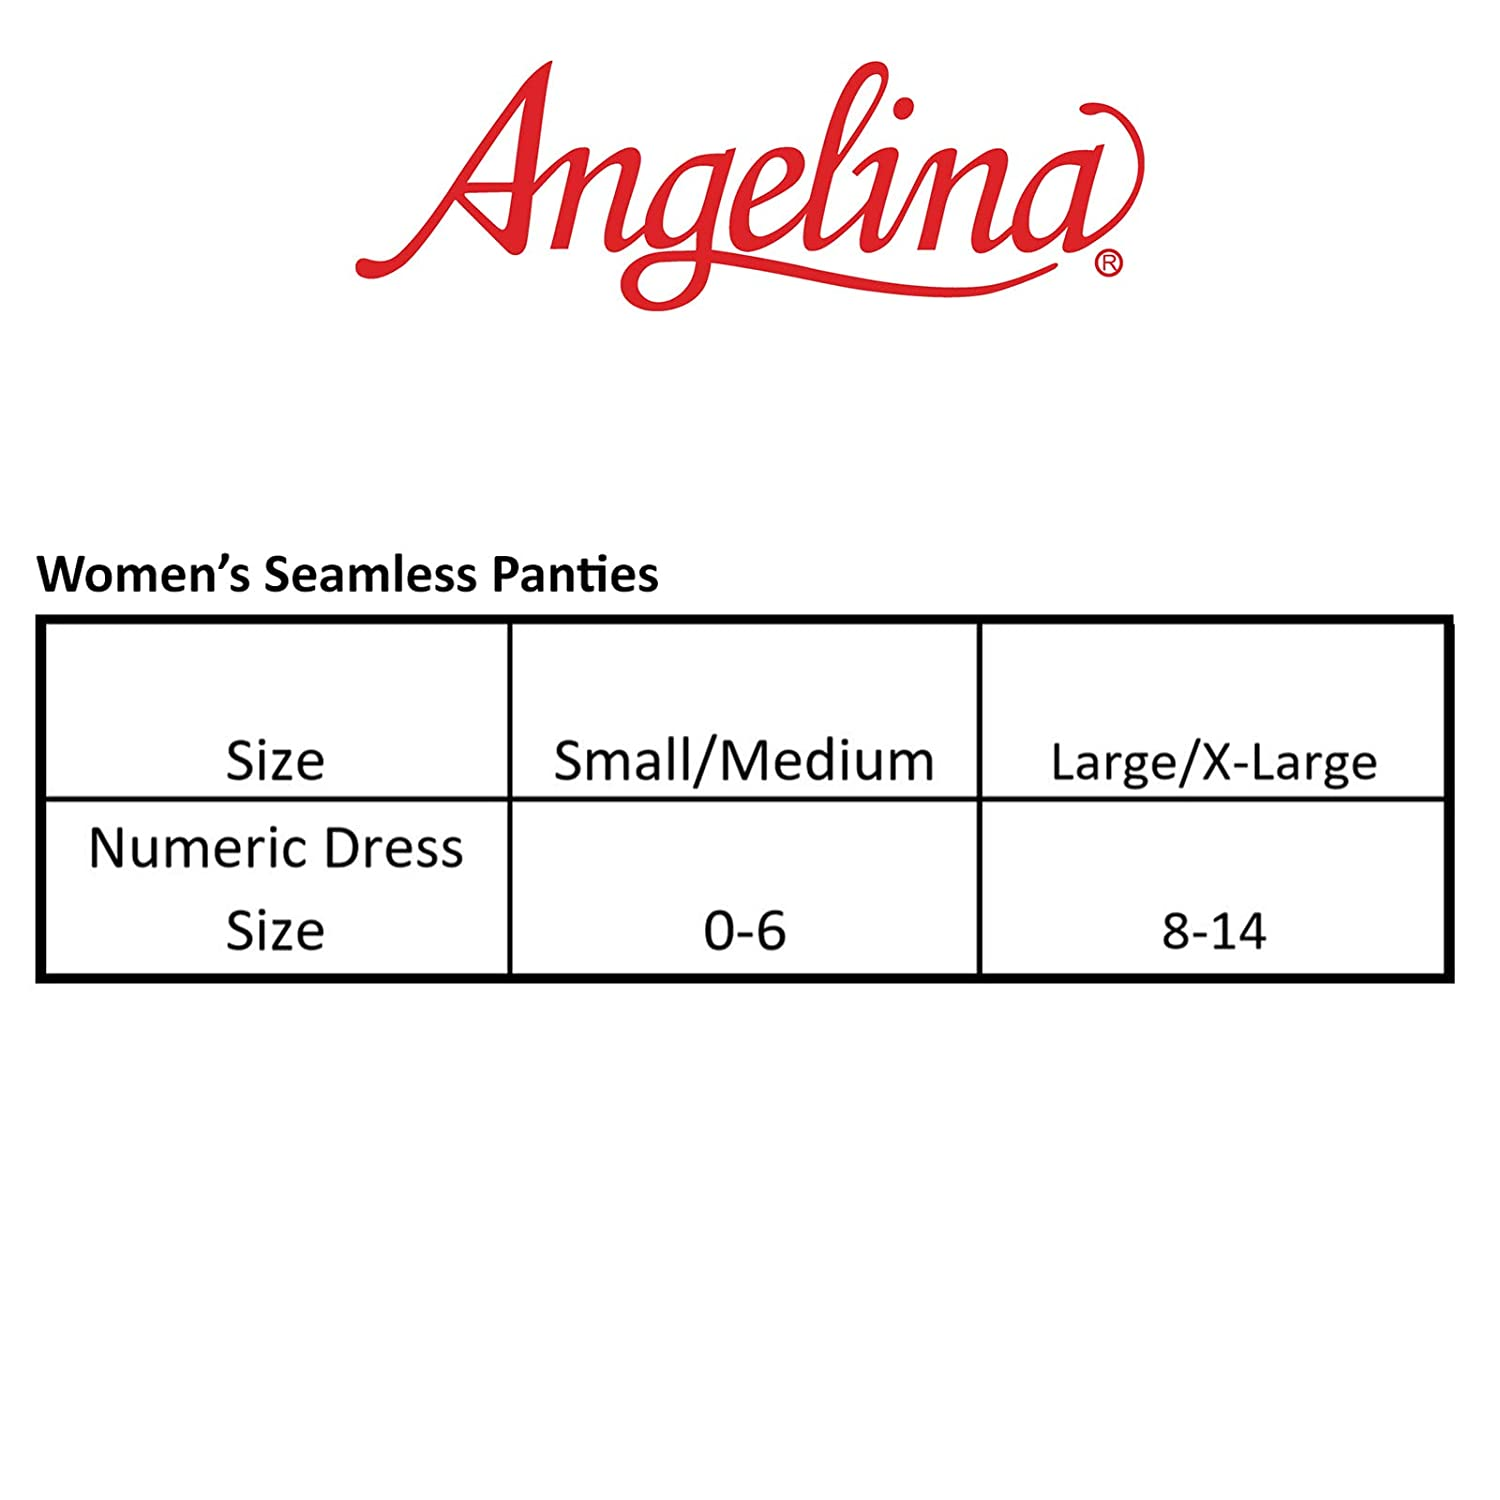 866ce8af39fb Angelina Seamless Boyshort Panties with Side Cutout Detail (6-Pack),  SE895_S-M at Amazon Women's Clothing store: